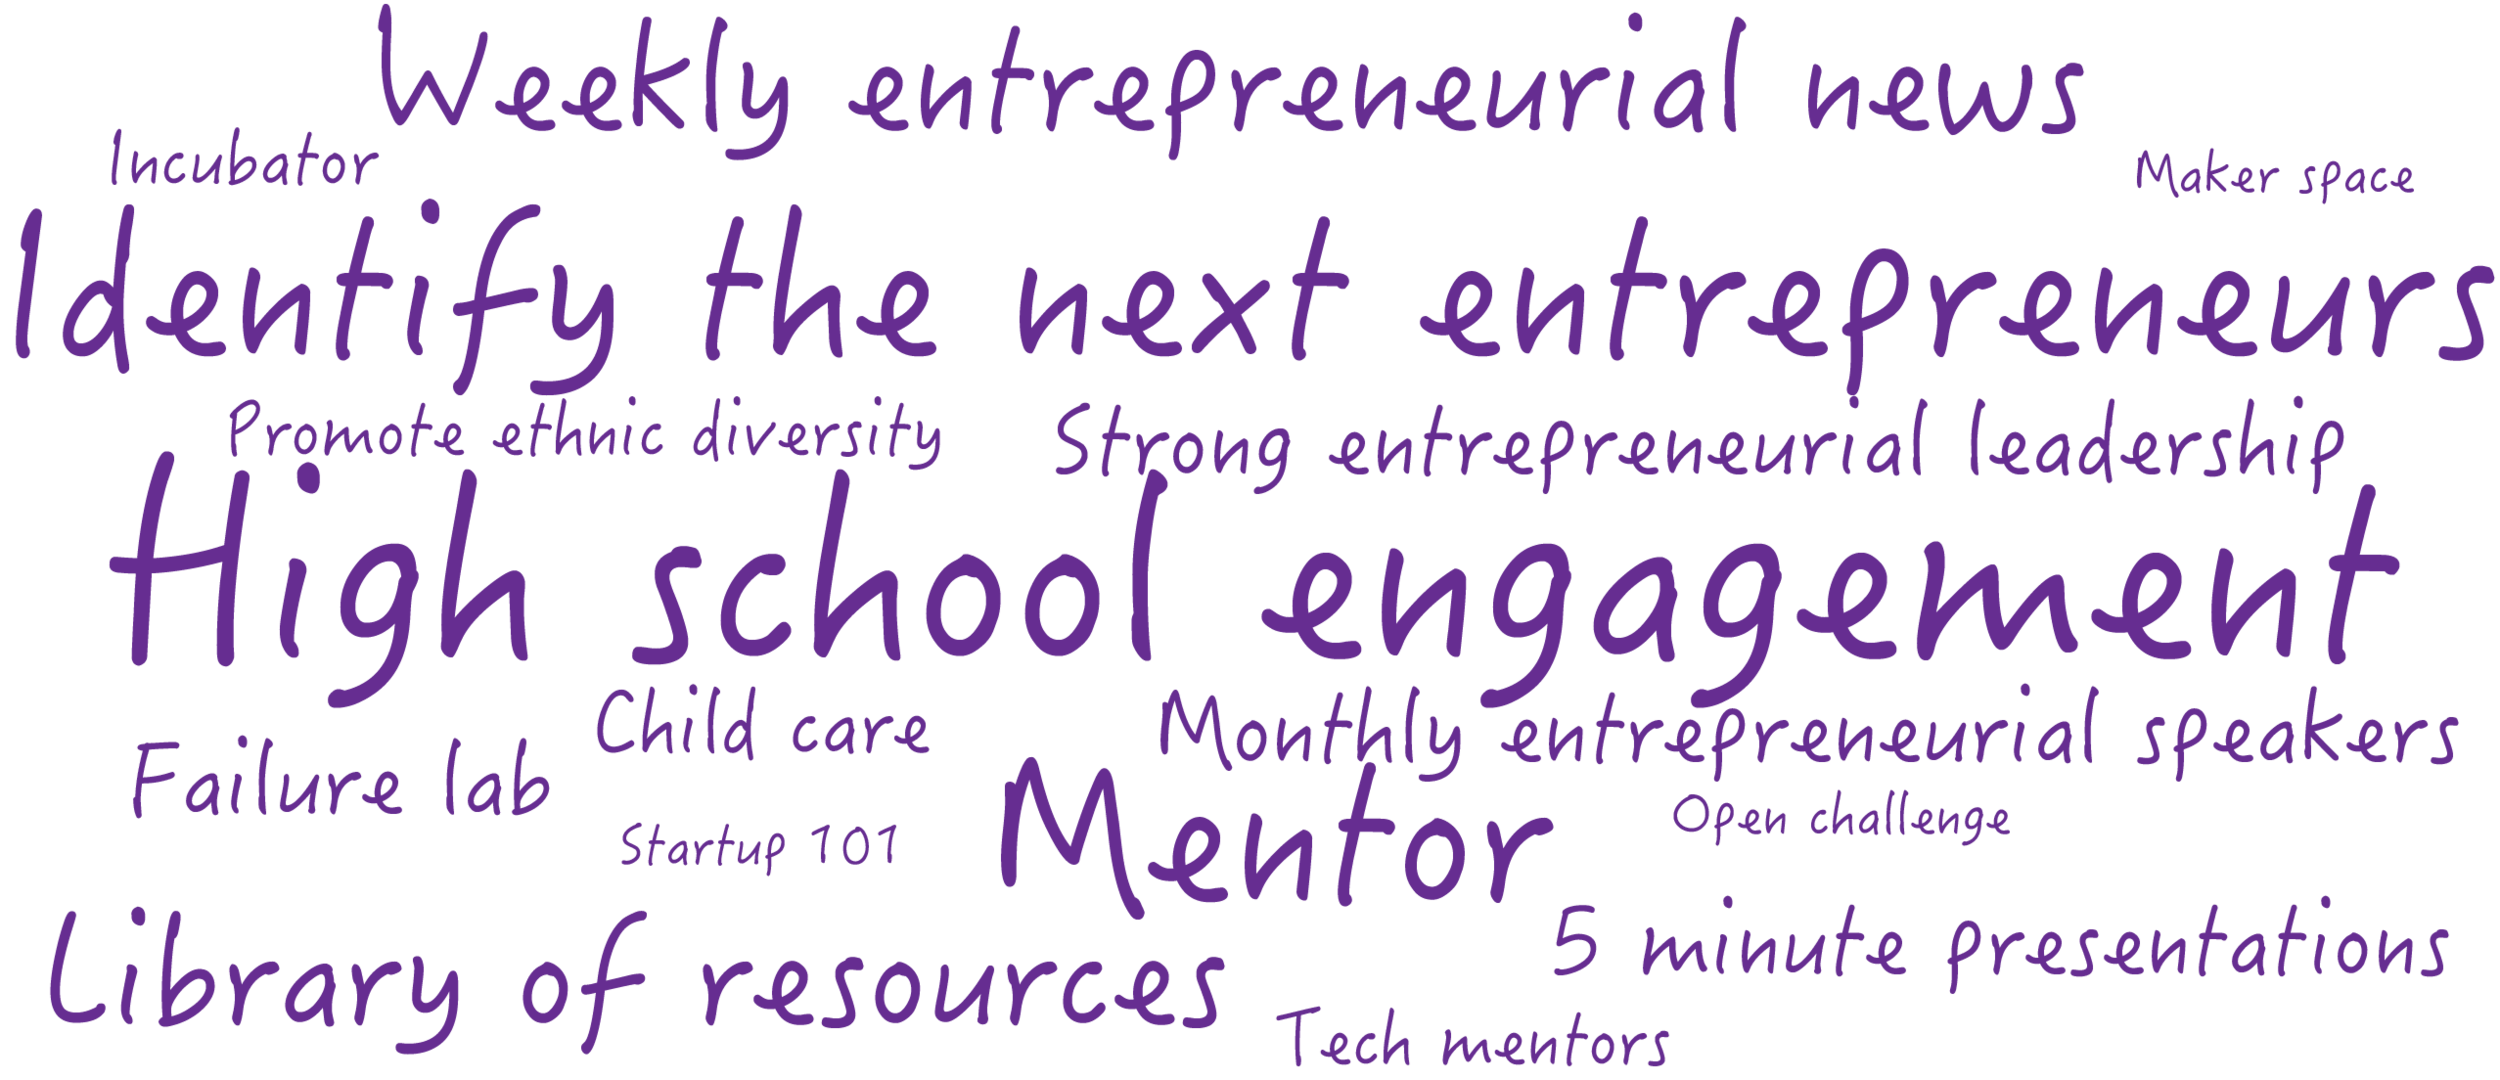 Top ways we can create a more inclusive entrepreneurial and small business community.